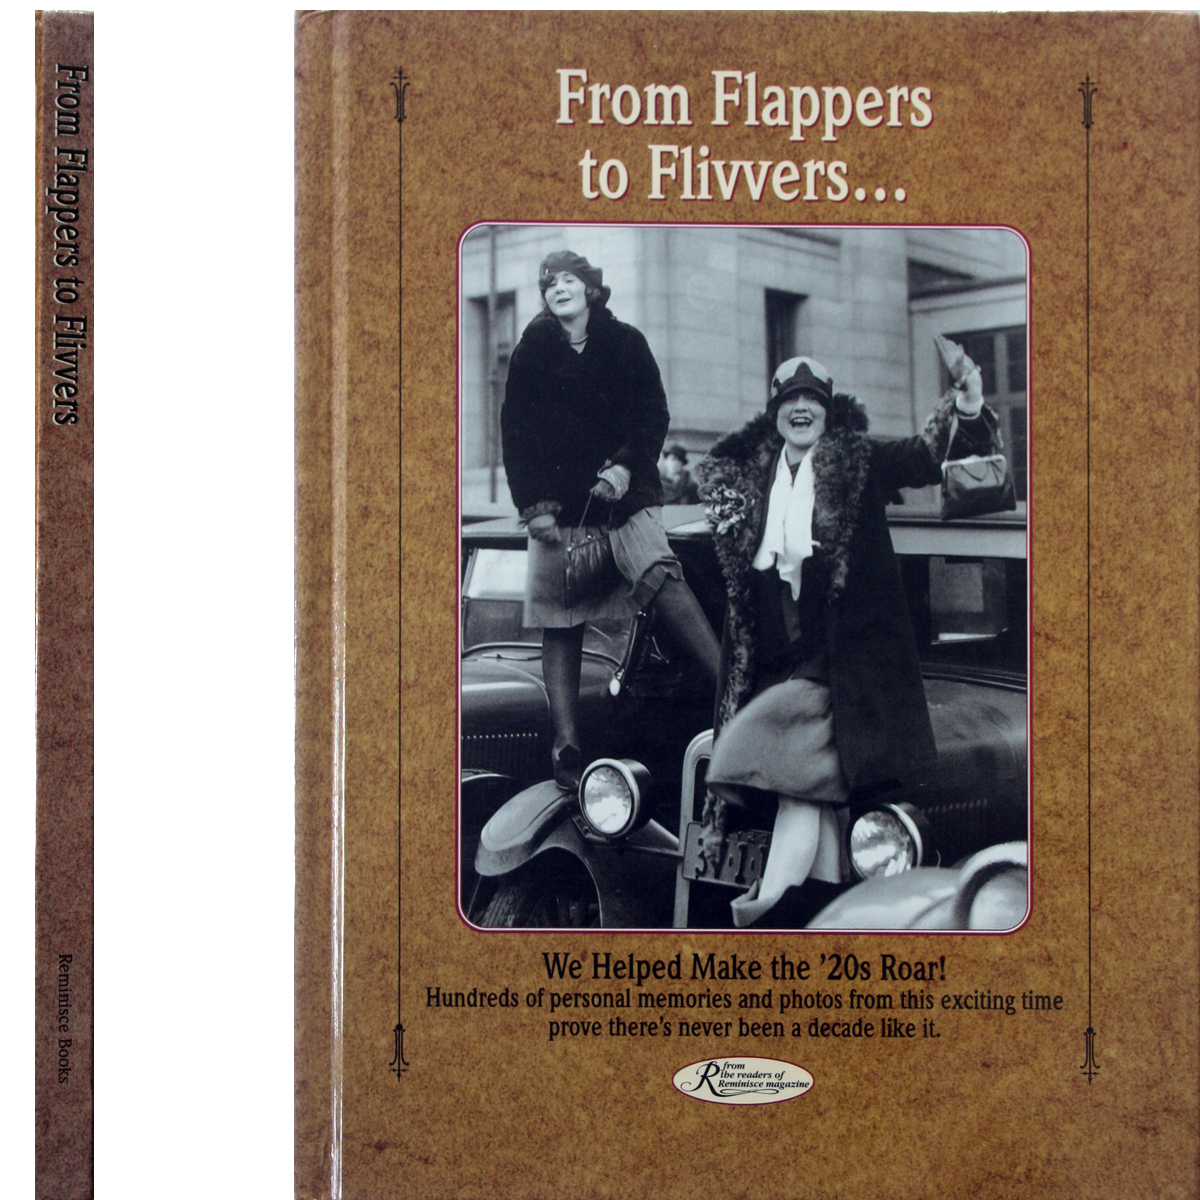 From Flappers to Flivvers OOP ROARING 20's Book Photos